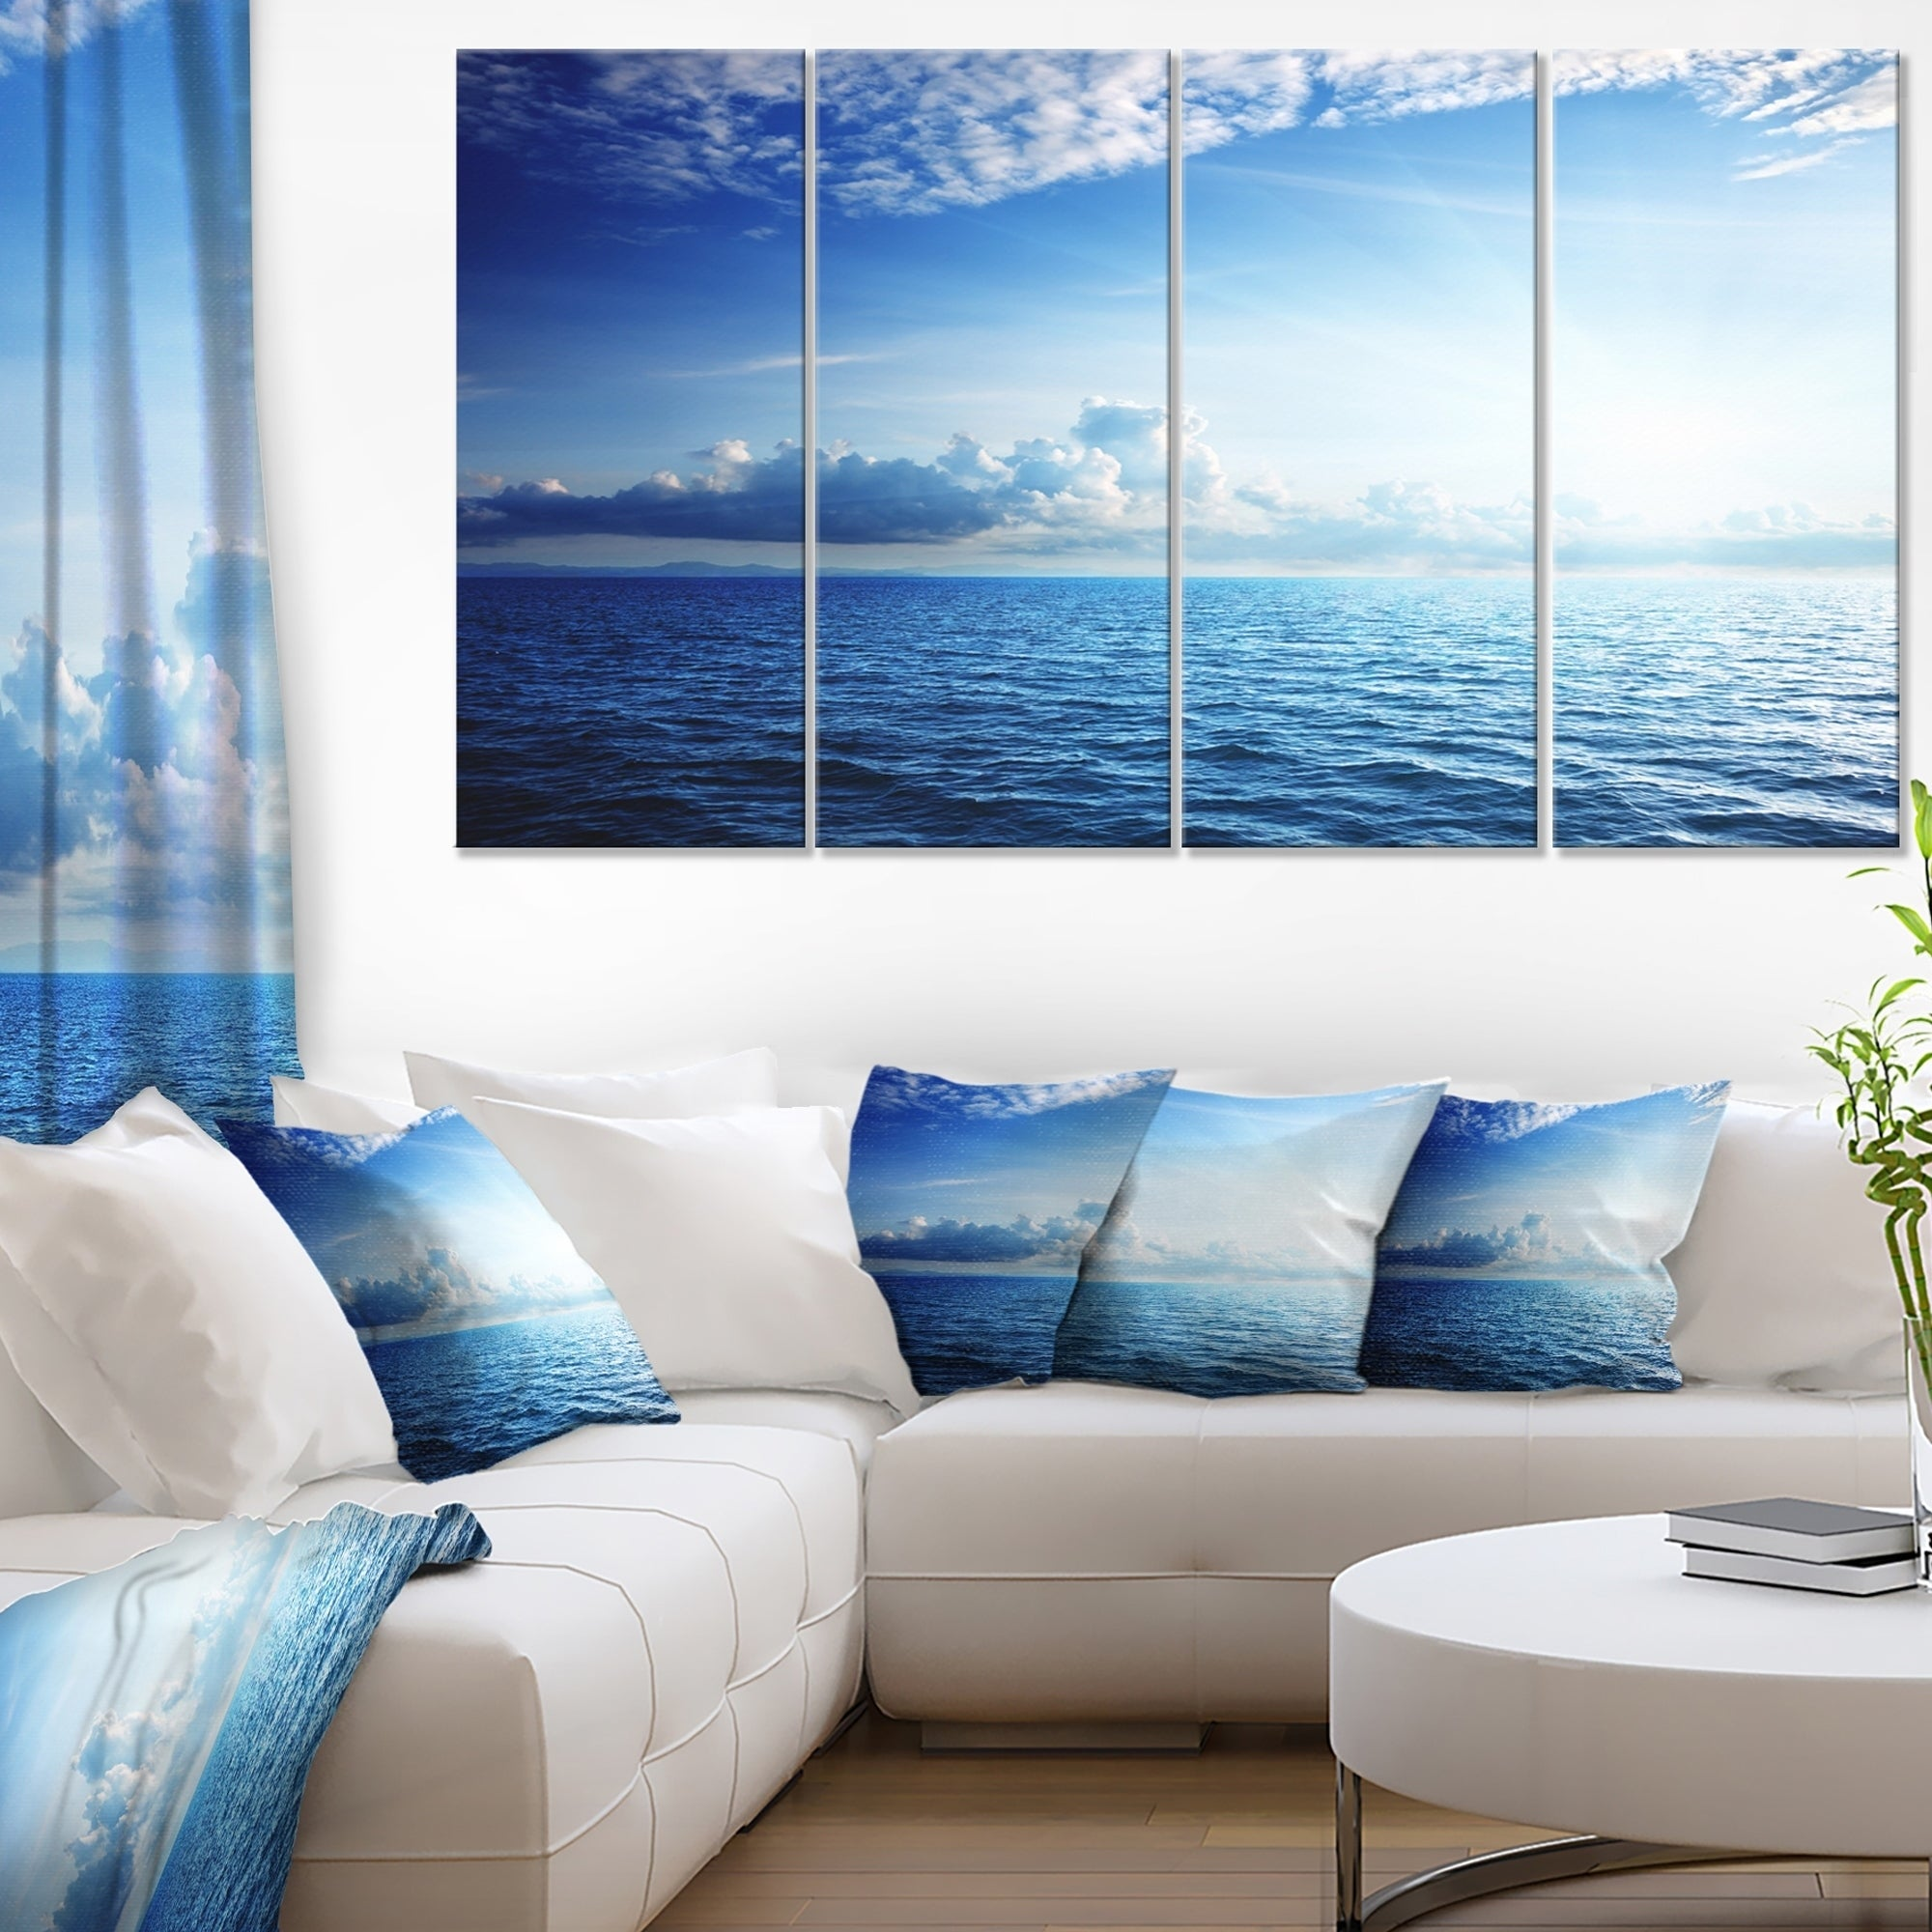 Caribbean Sea And Perfect Blue Sky Extra Large Seascape Art Canvas On Sale Overstock 12304973